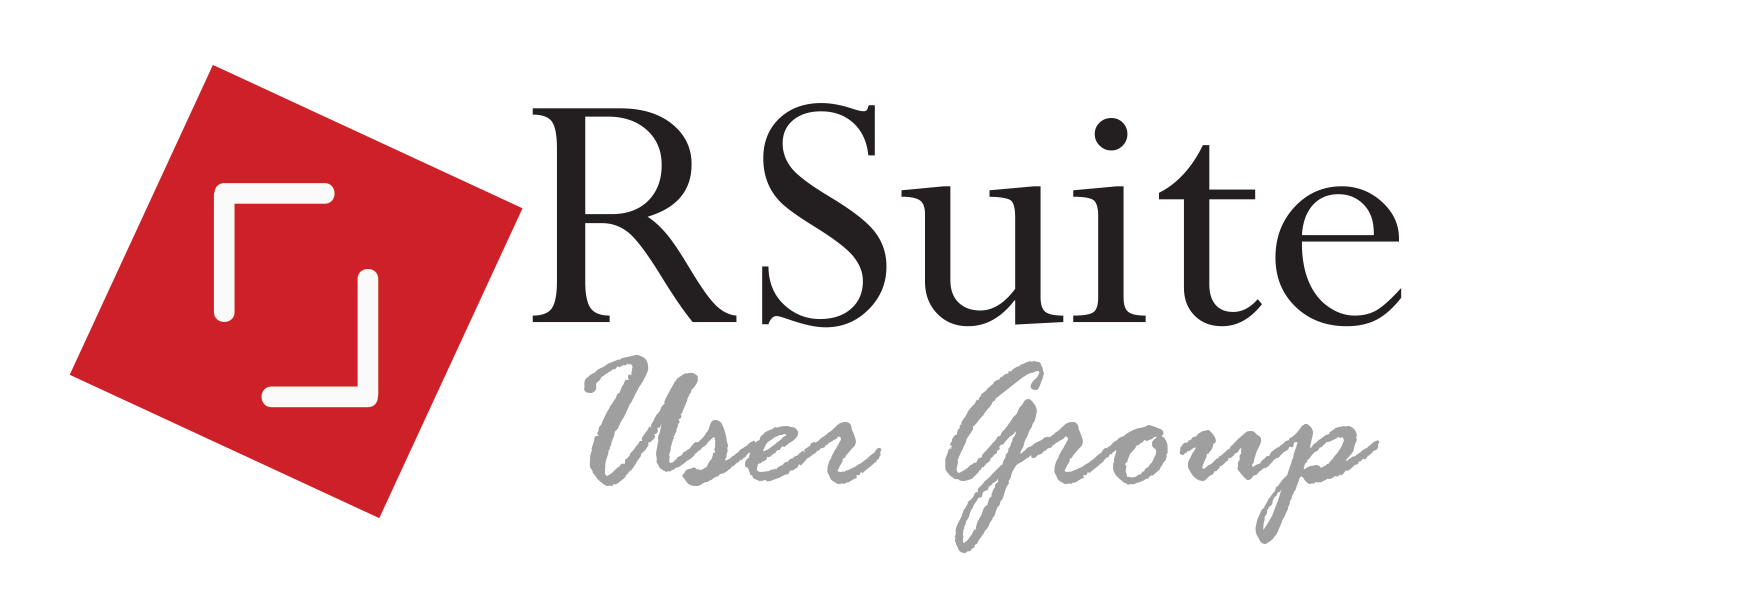 RSuite User Group Logo.png